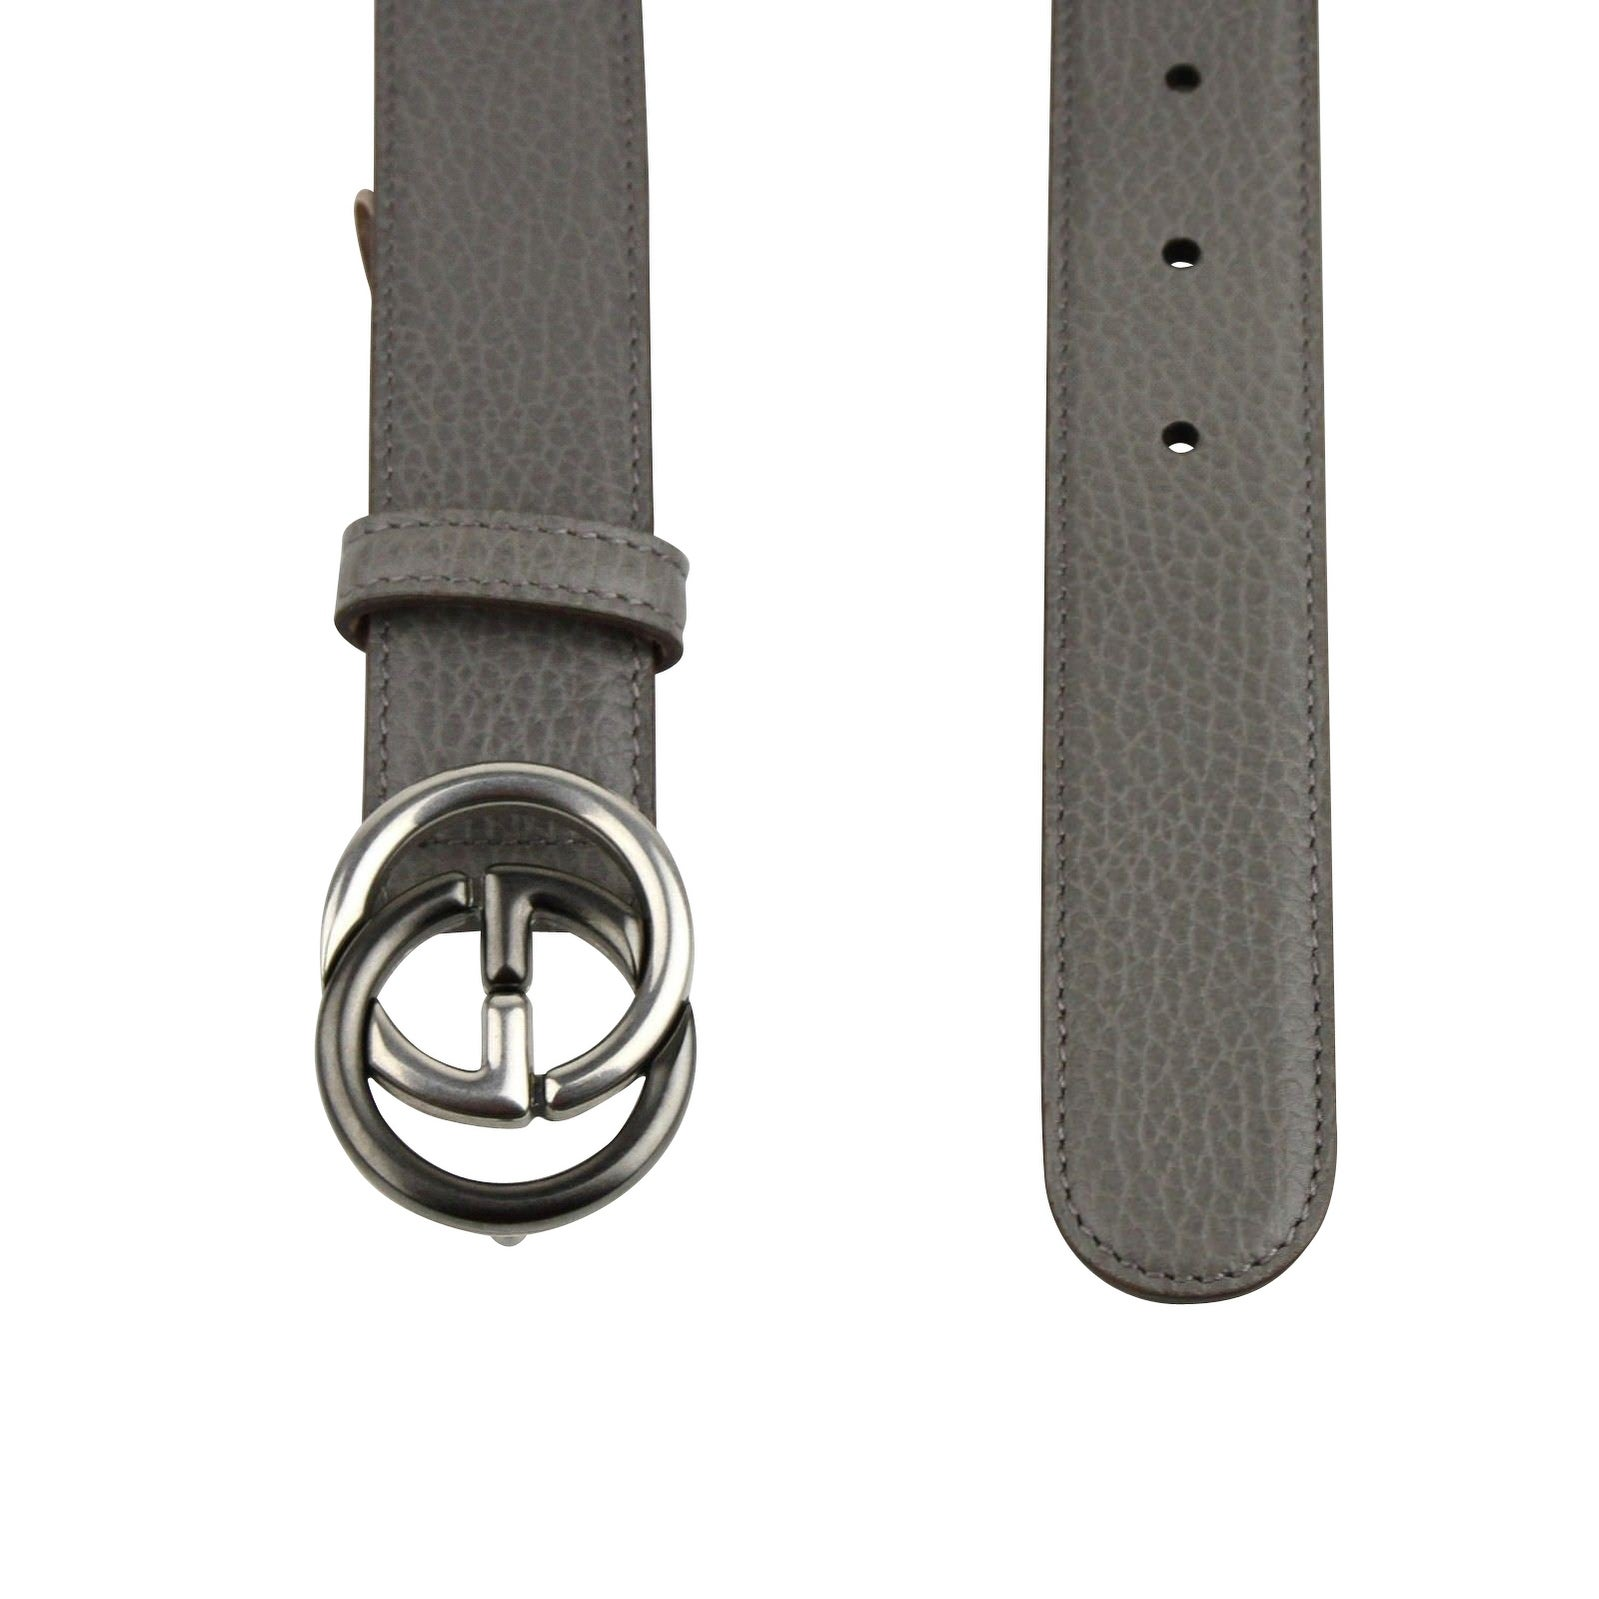 7add09f9470 Shop New Gucci Men s Grey Leather Belt with GG Buckle 295704 1226 - Free  Shipping Today - Overstock - 25452903